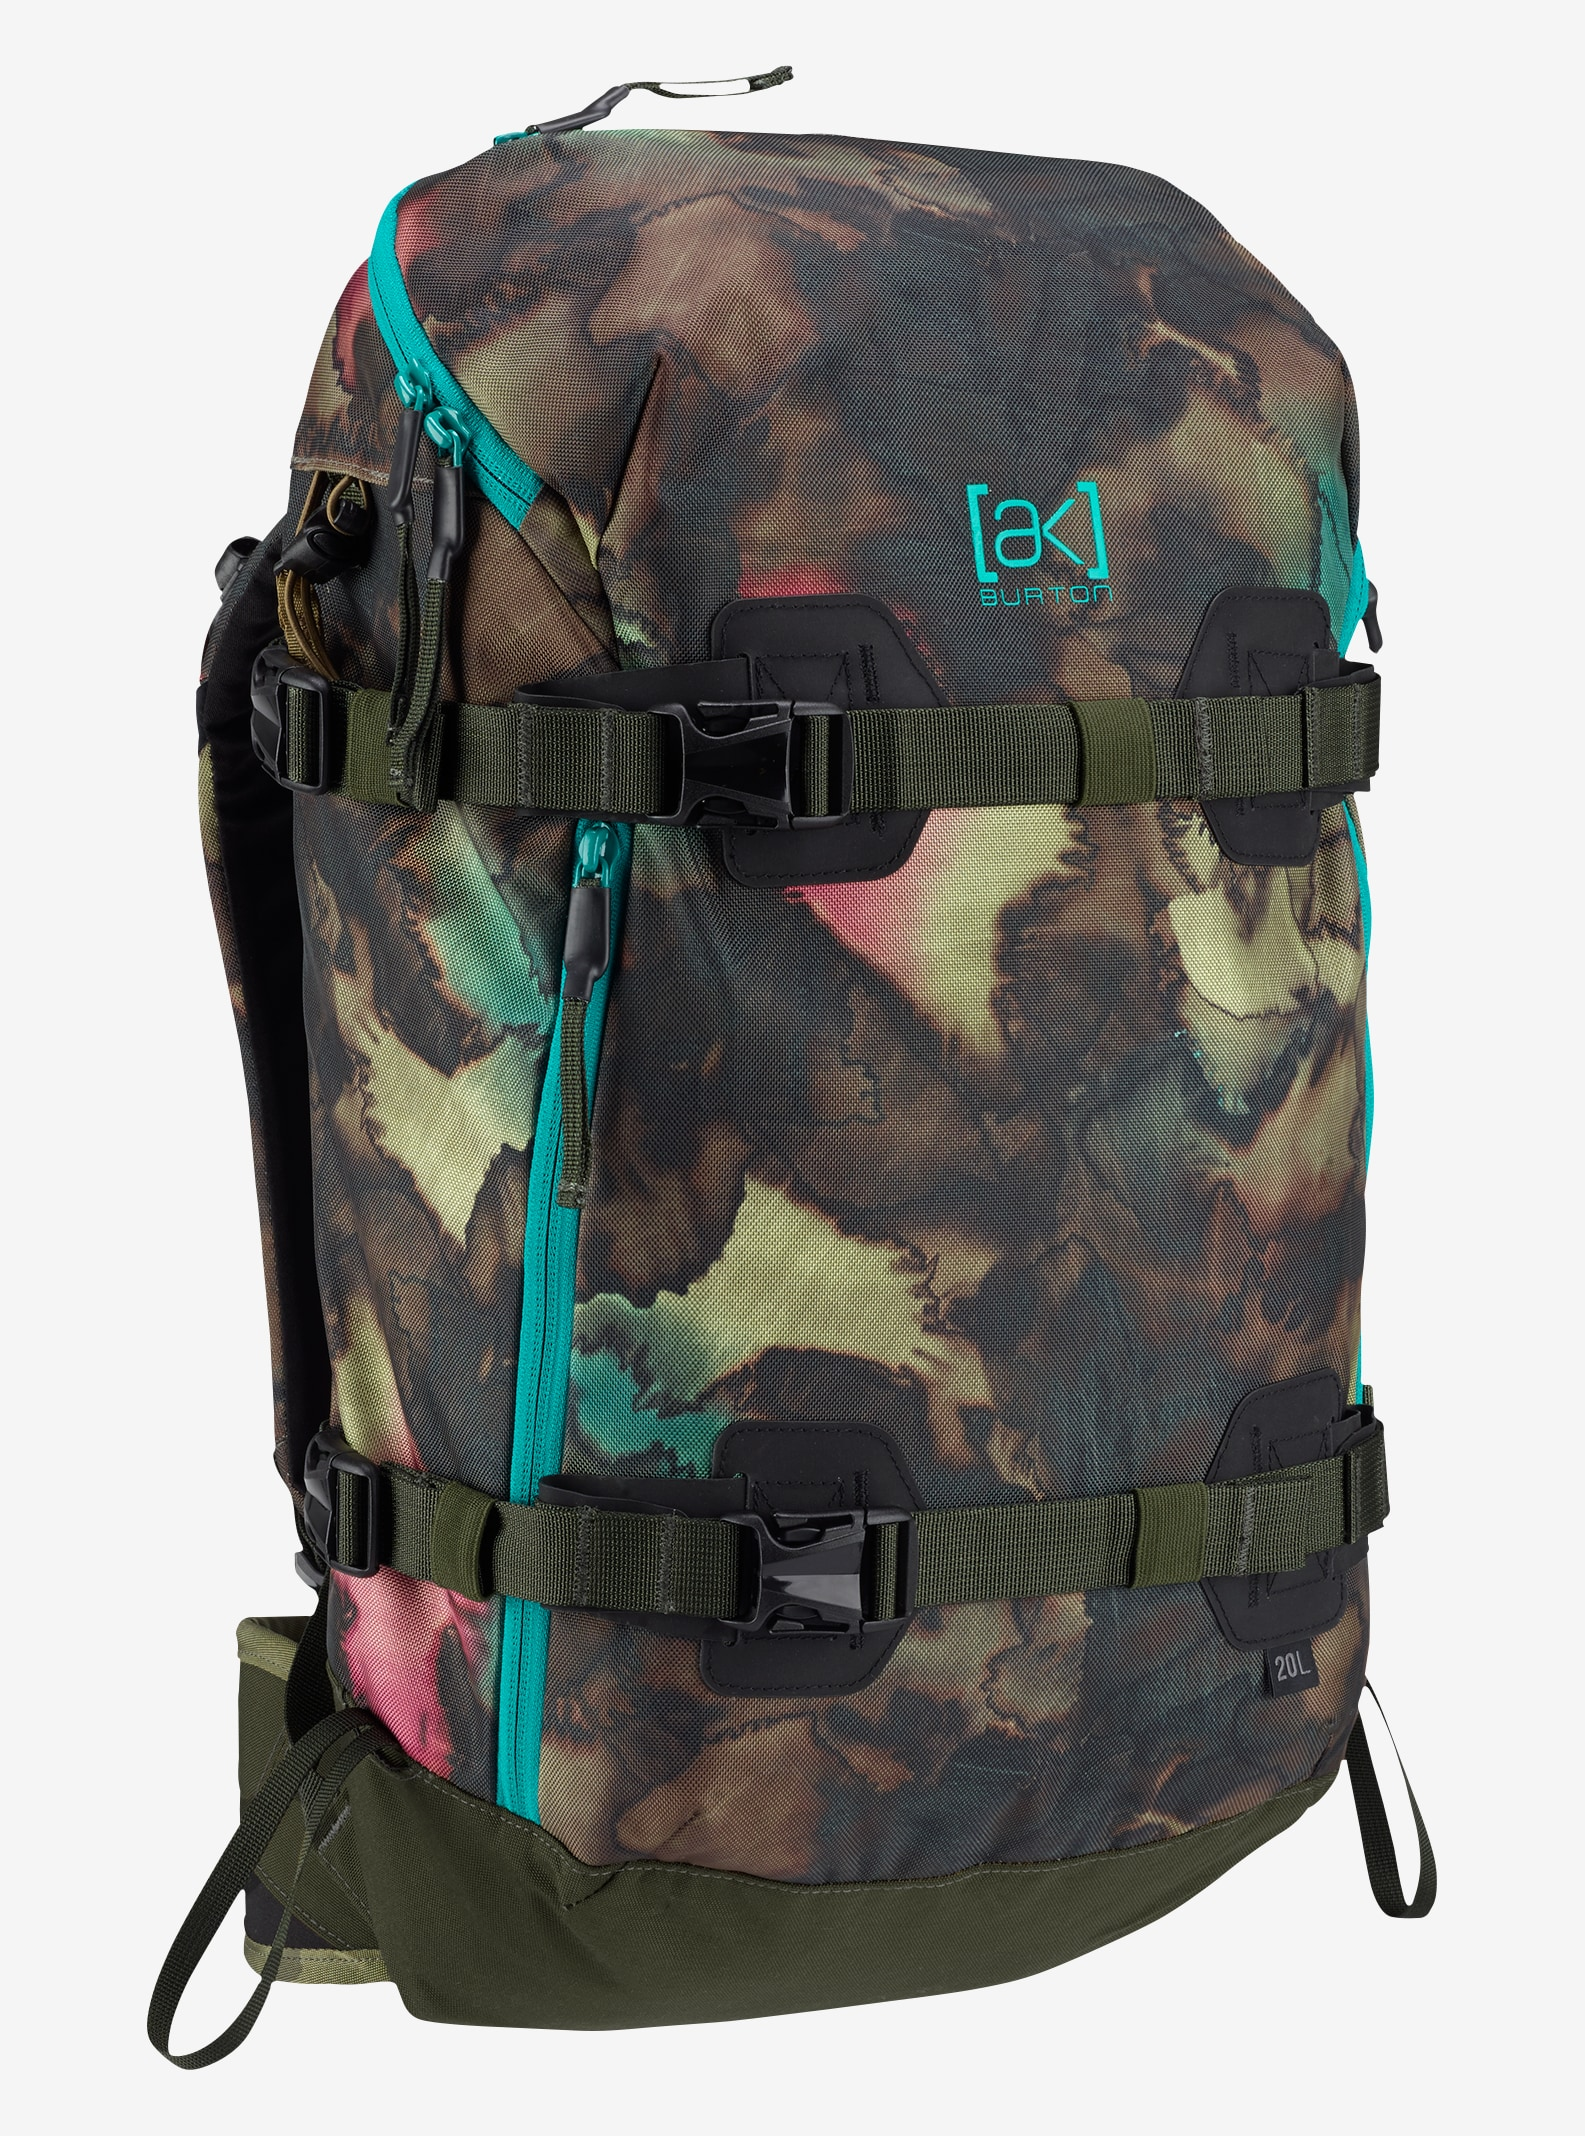 Burton Women's [ak] 20L Backpack shown in Tea Camo Print